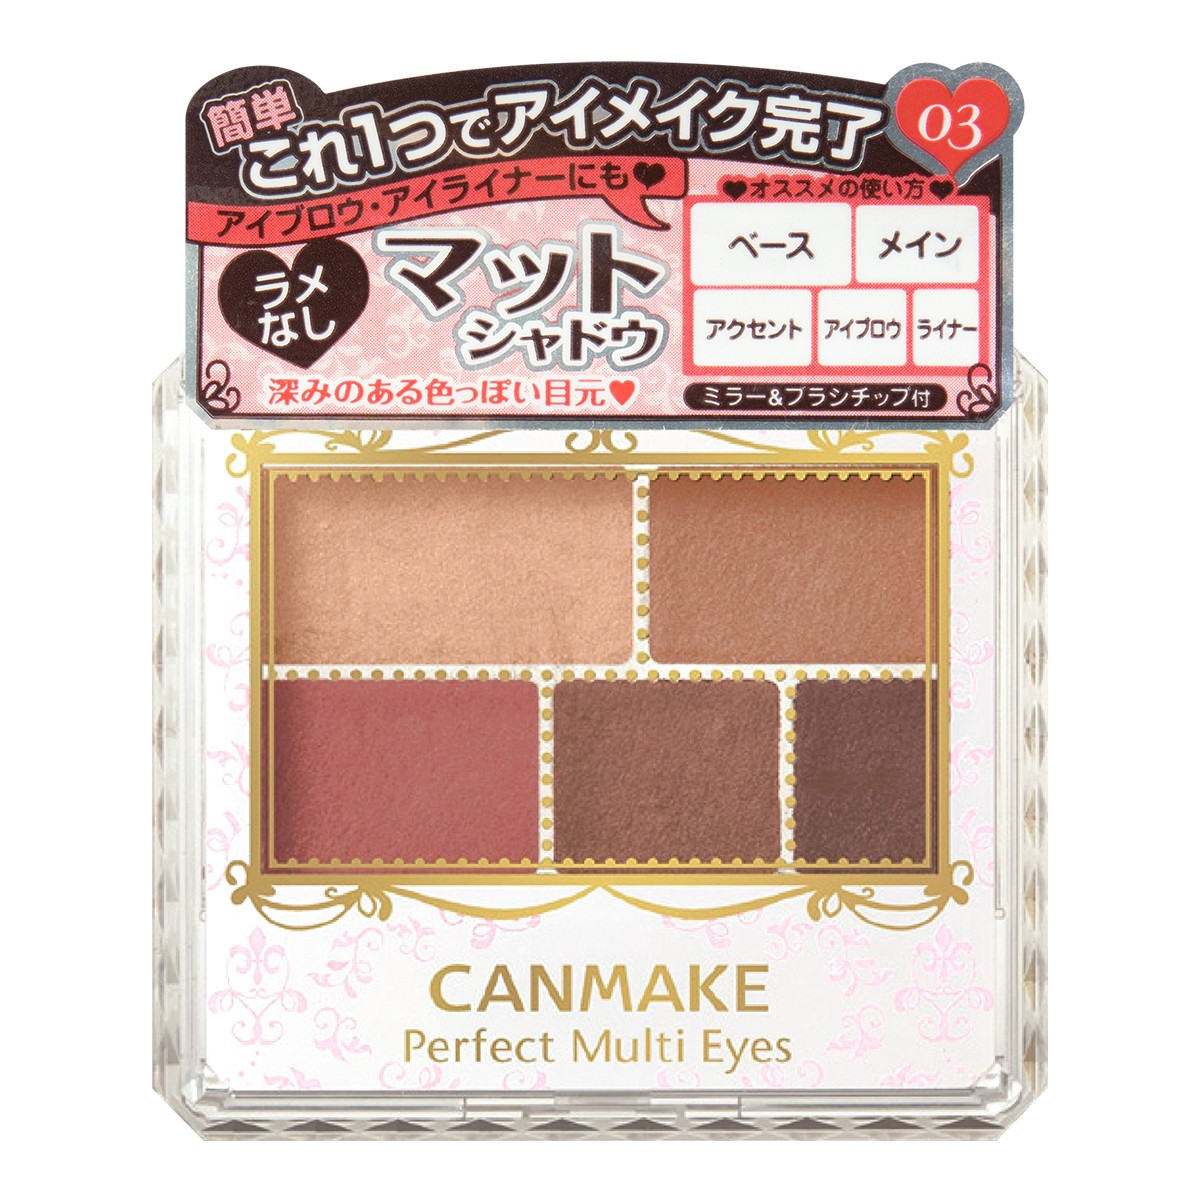 CANMAKE Perfect Multi Eyes Shadow Palette #03 Antique terracotta 3.3g